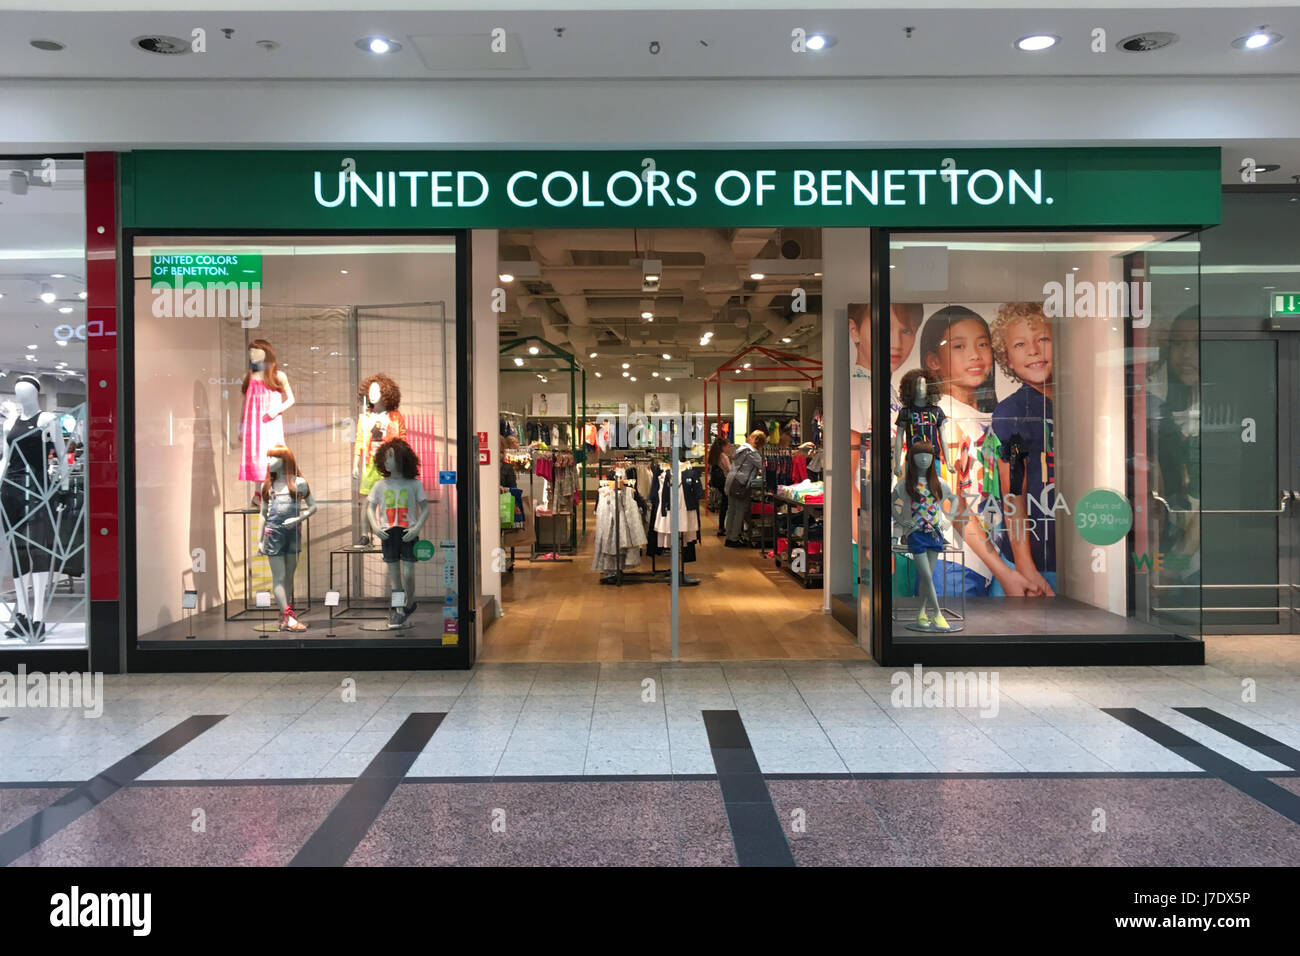 Krakow, Poland - May 21, 2017:  Exterior of United Colors of Benetton store in Krakow.  Benetton is a global fashion - Stock Image